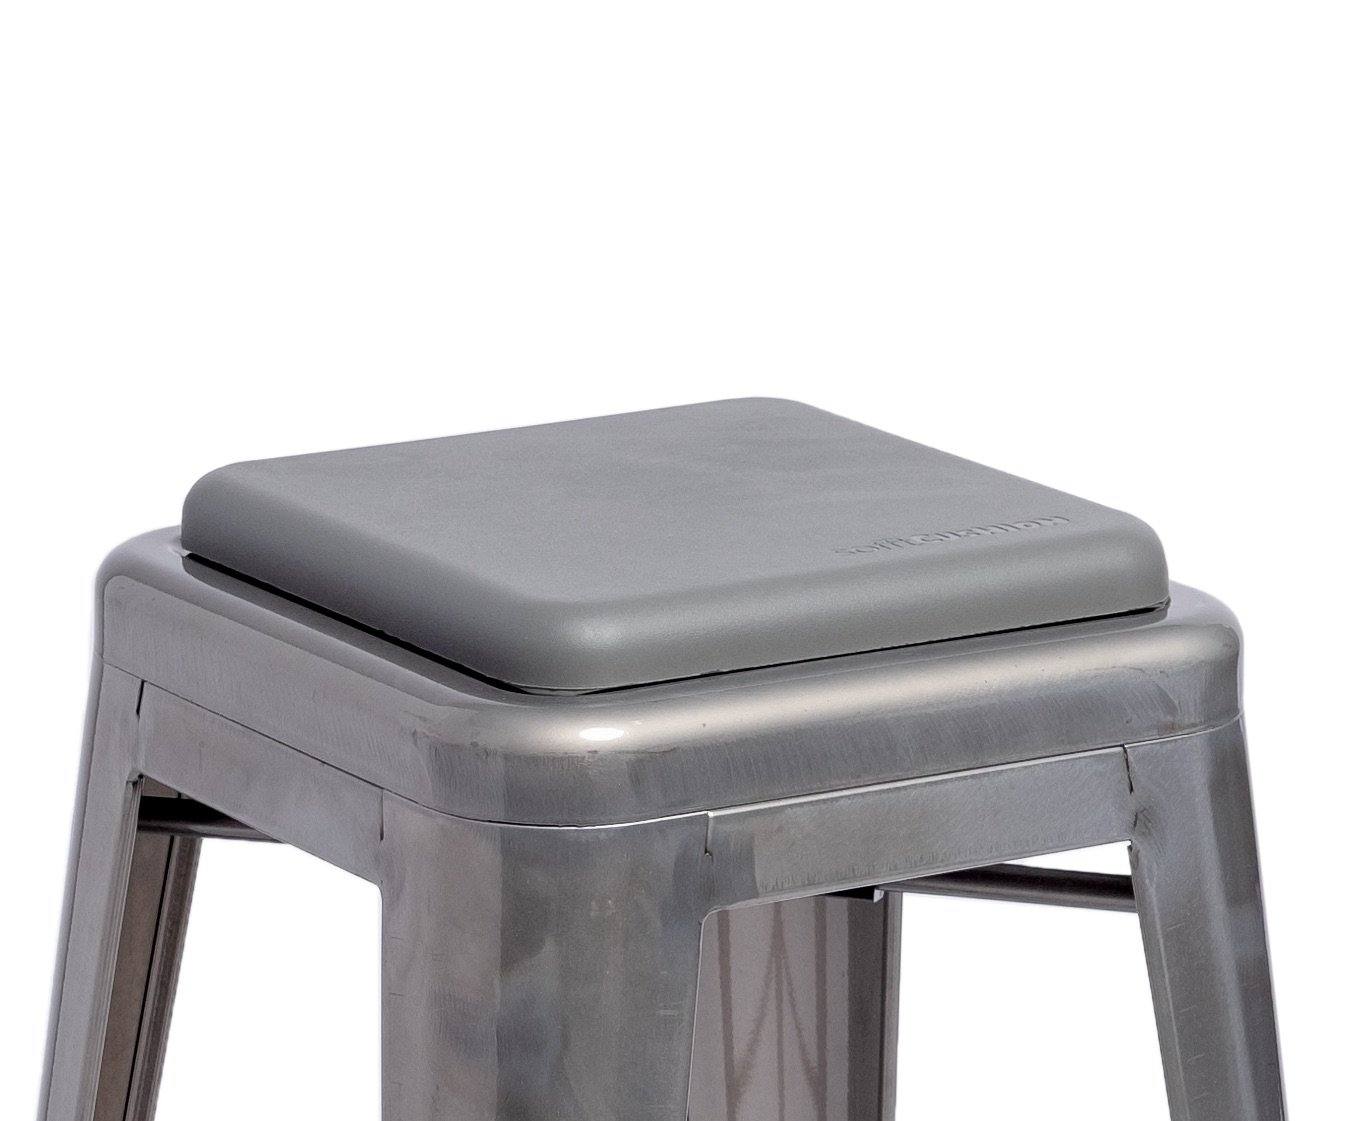 Sofft Cushion Square Seat Cushion for Metal Bar Stools or Chairs - Cushion Only (Gray)